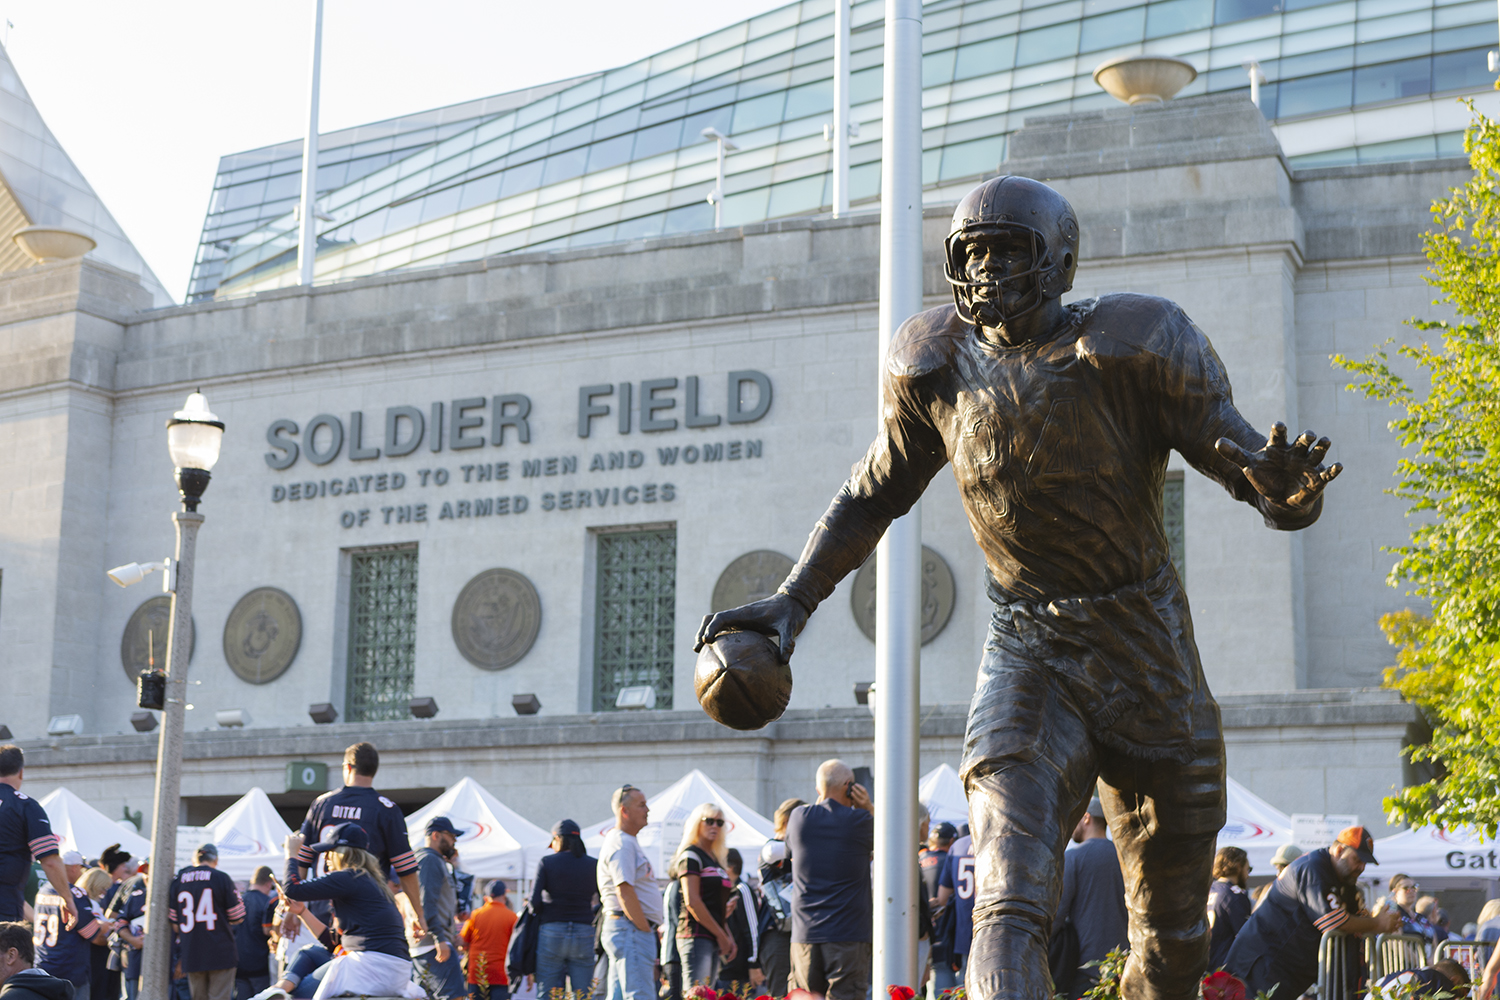 Fans+of+all+ages+gathered+around+the+Walter+Payton+statue+to+take+photos.